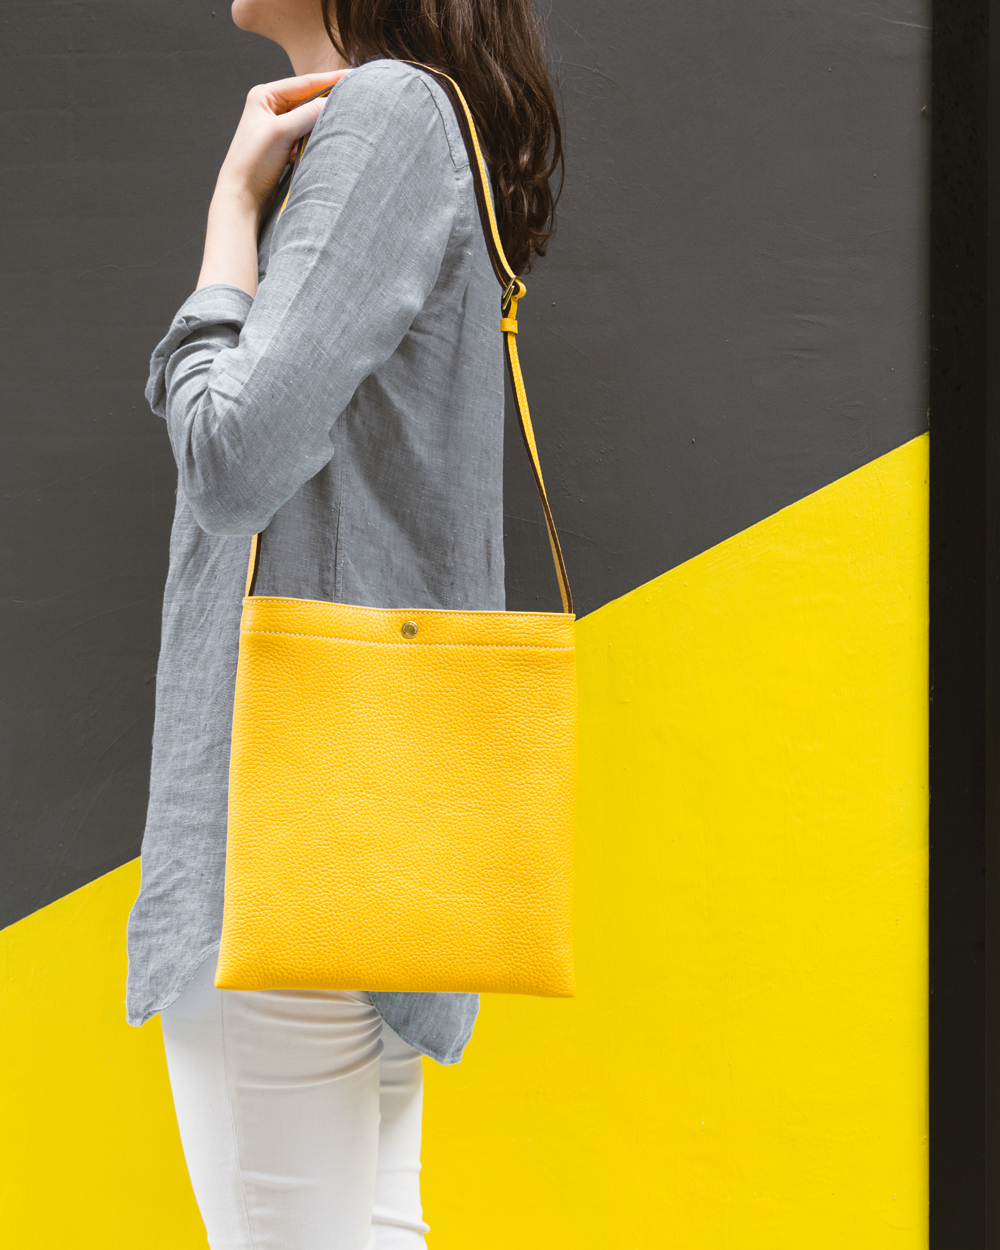 Just Campagne Semeur shoulder bag – lifestyle photography by Tracy Wong